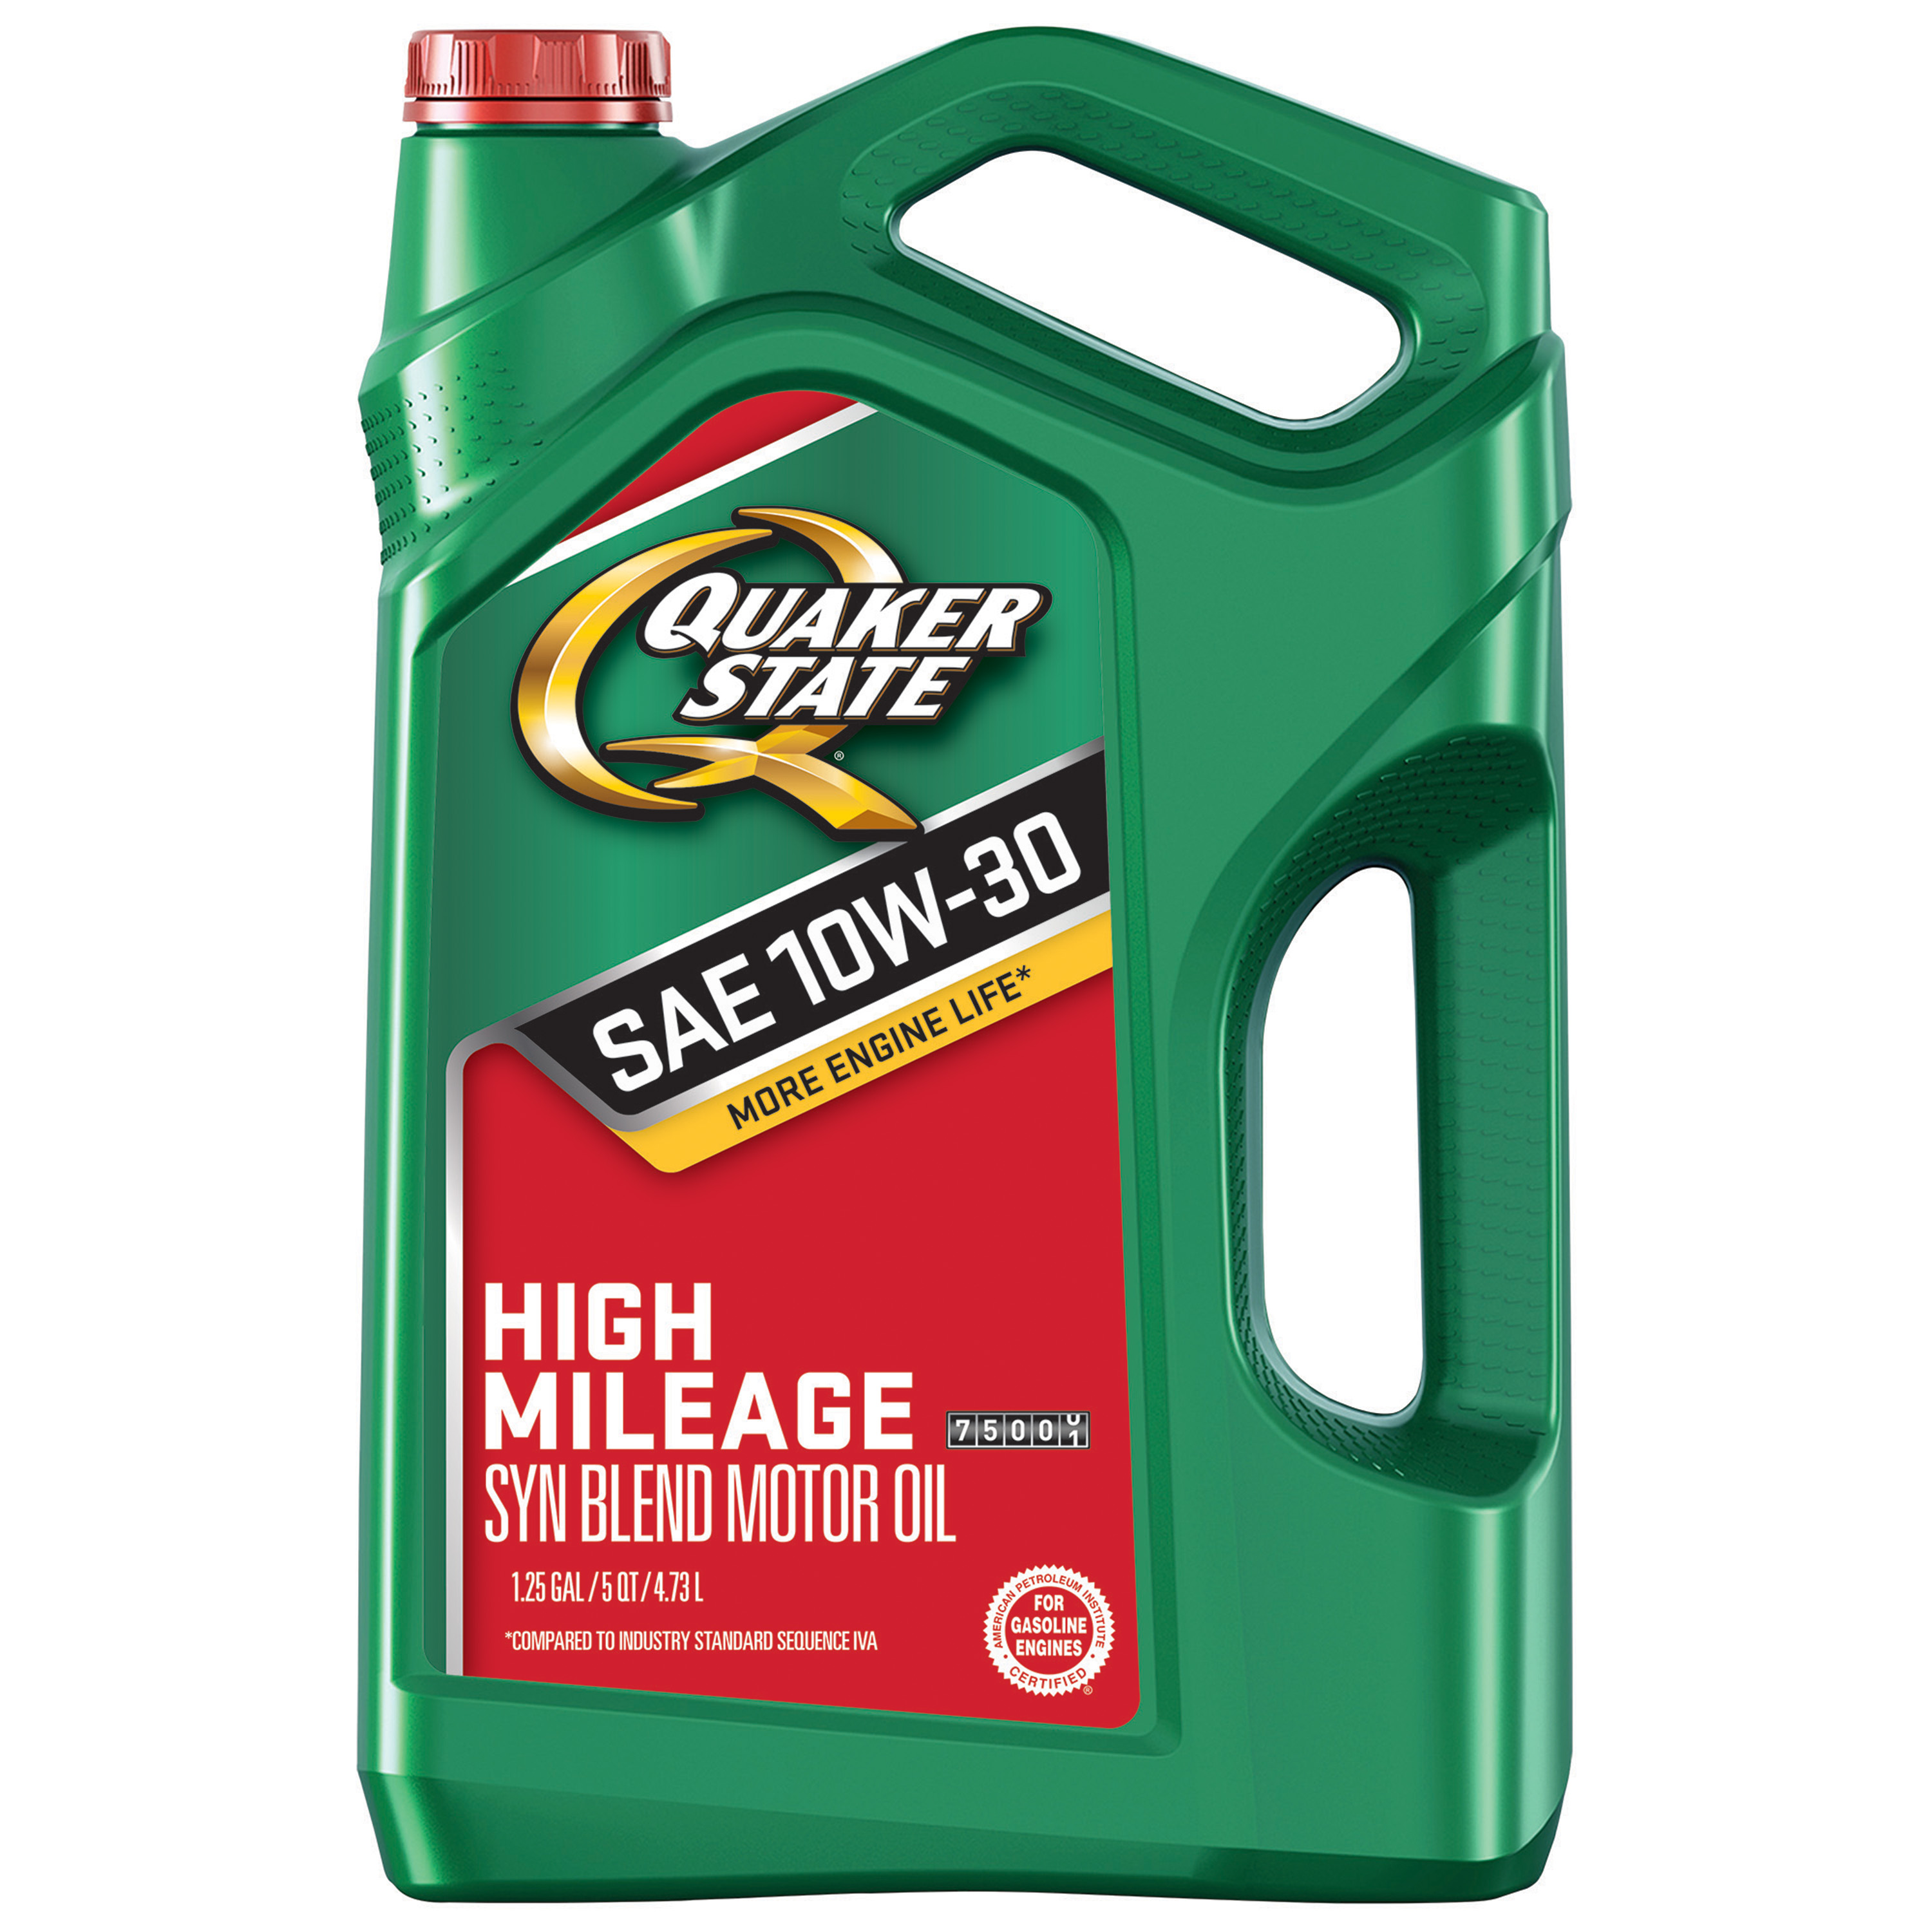 Quaker State High Mileage 10W-30 Synthetic Blend Motor Oil, 5 qt